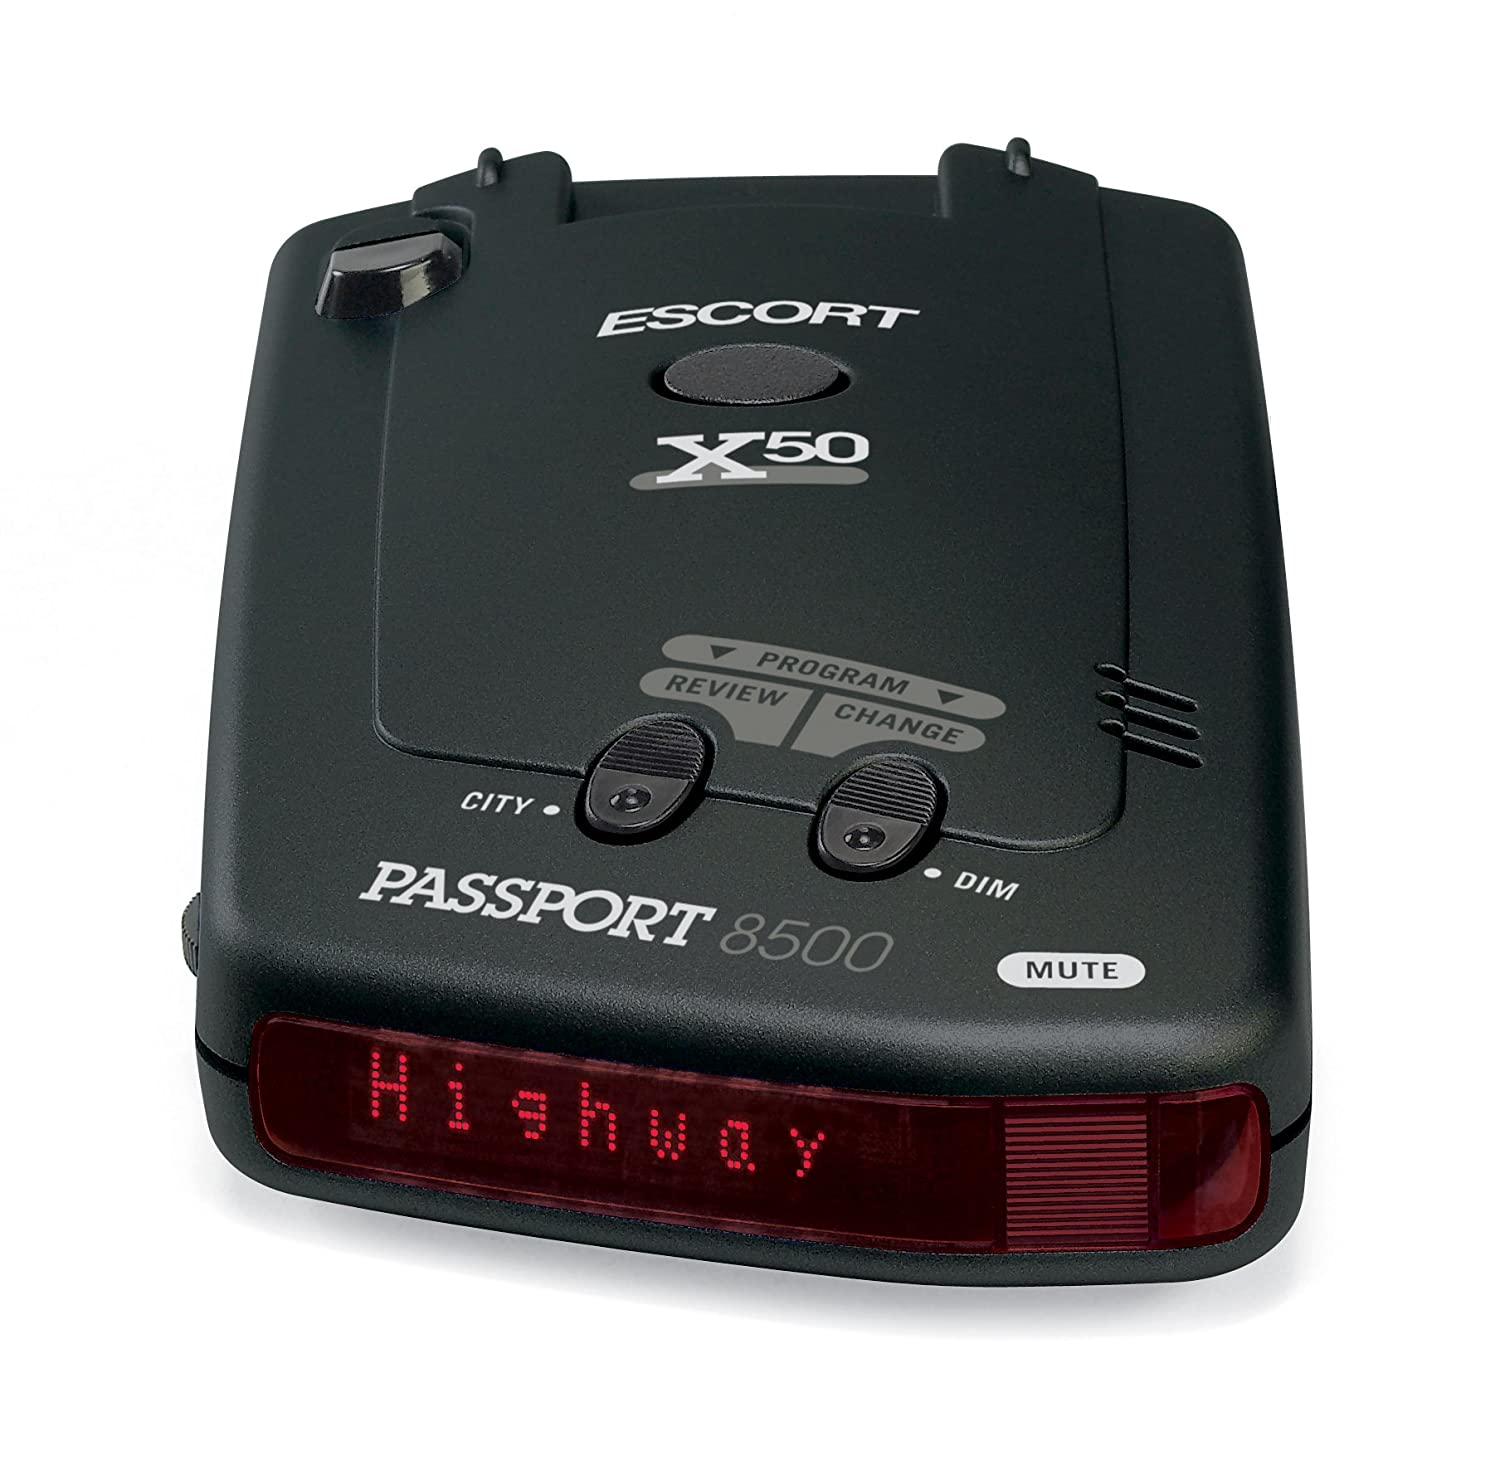 Amazon Escort Passport 8500X50 Black Radar Detector Red